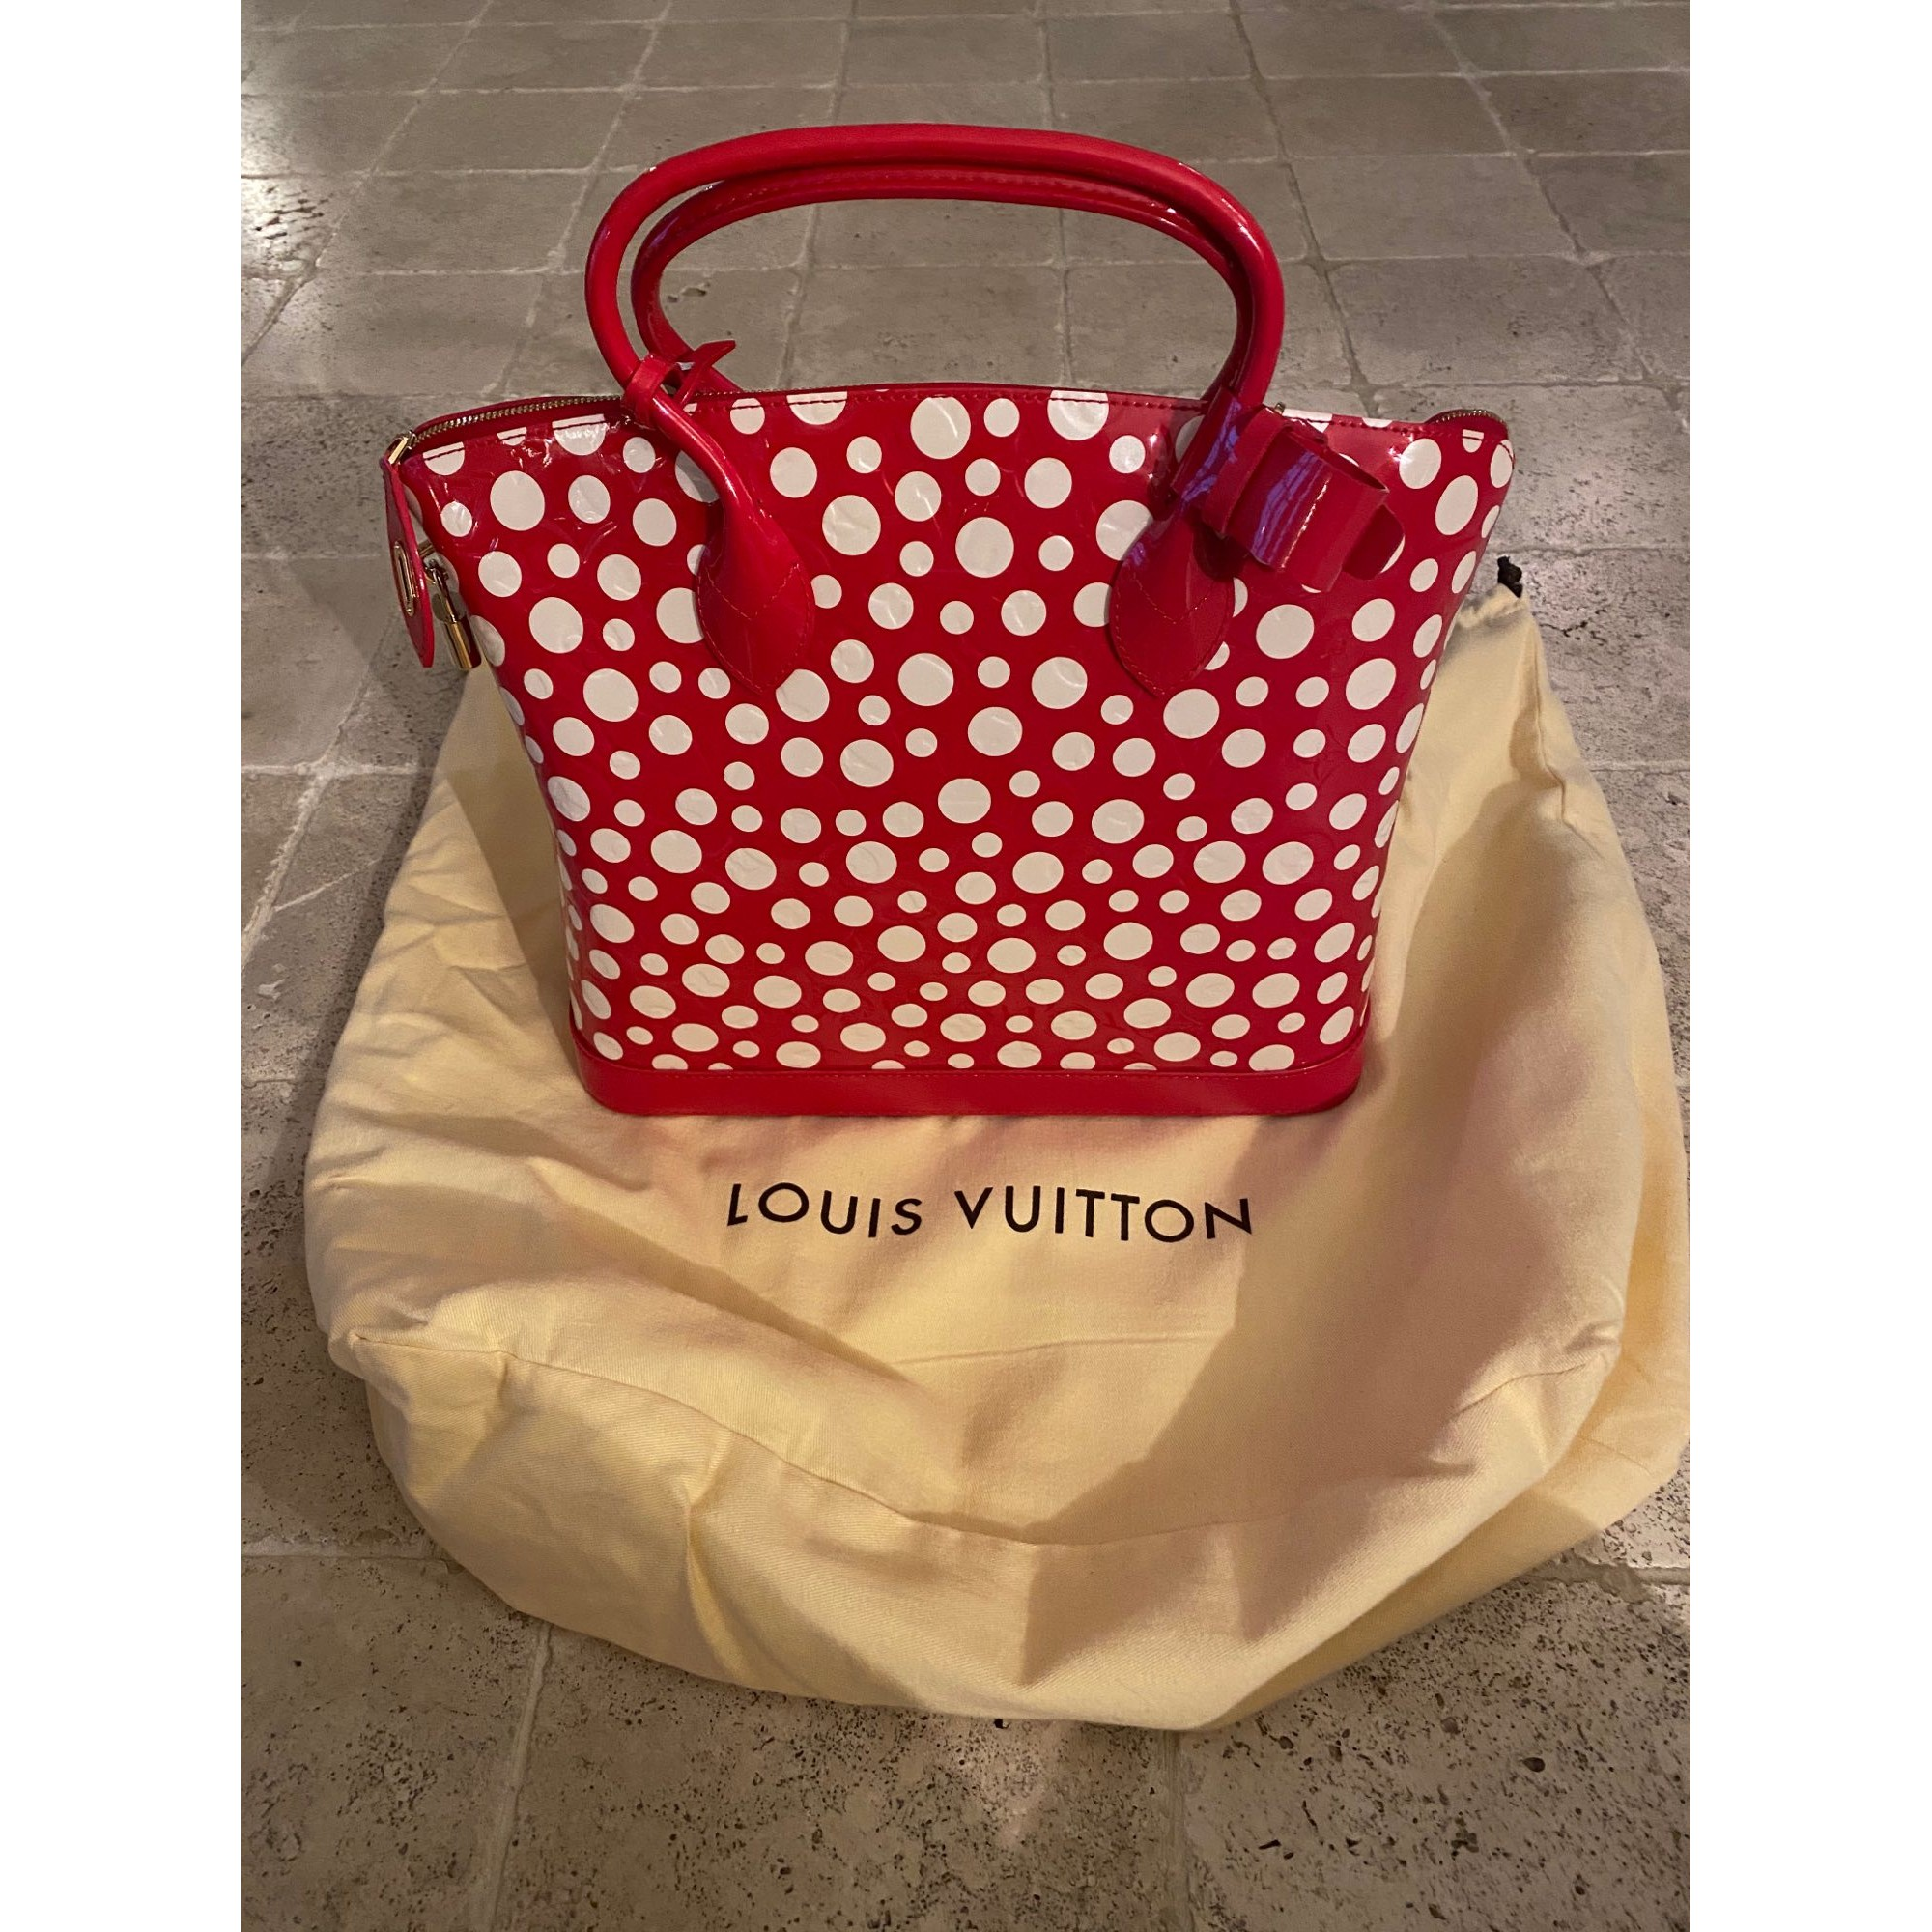 Sac à main en cuir LOUIS VUITTON Lockit Rouge, bordeaux